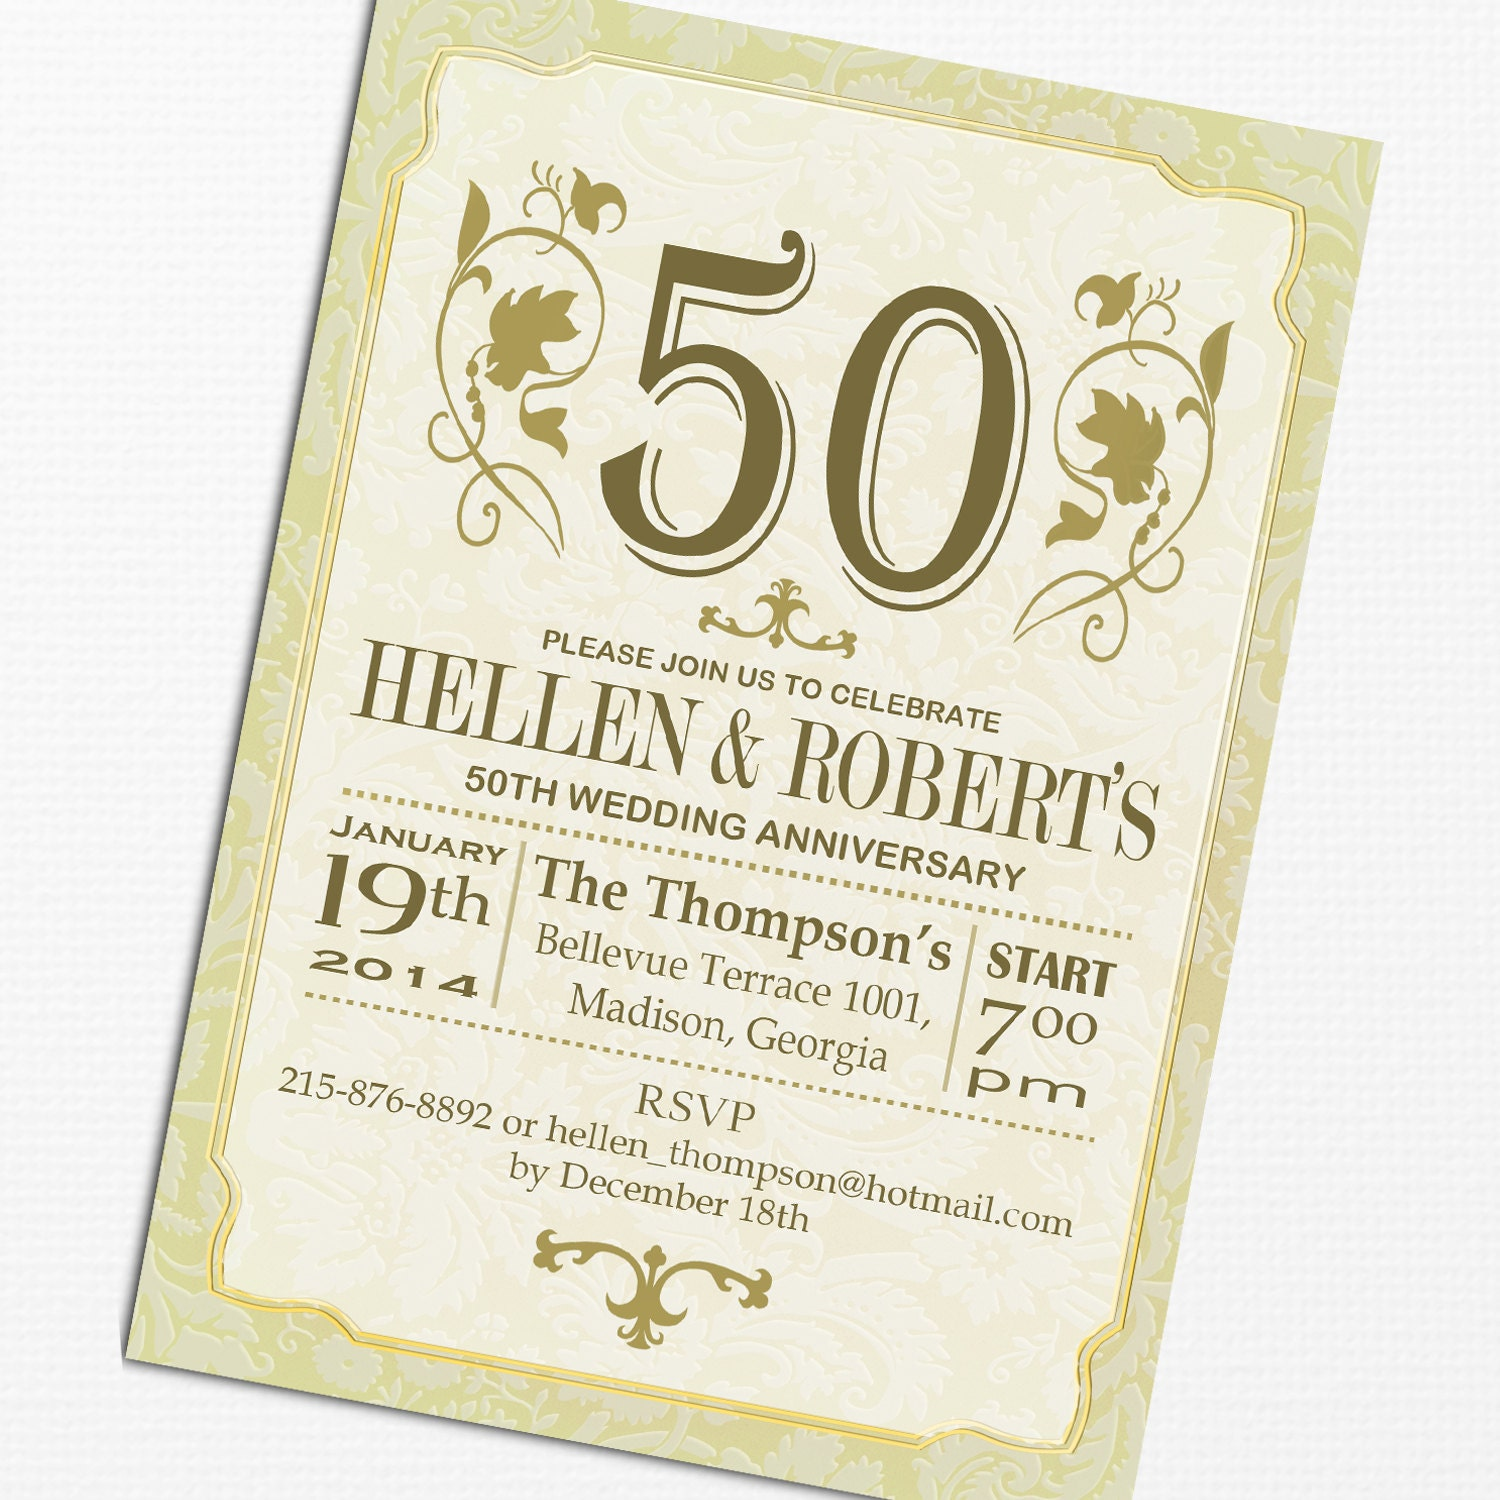 It's just a photo of Epic 50th Wedding Anniversary Cards Free Printable